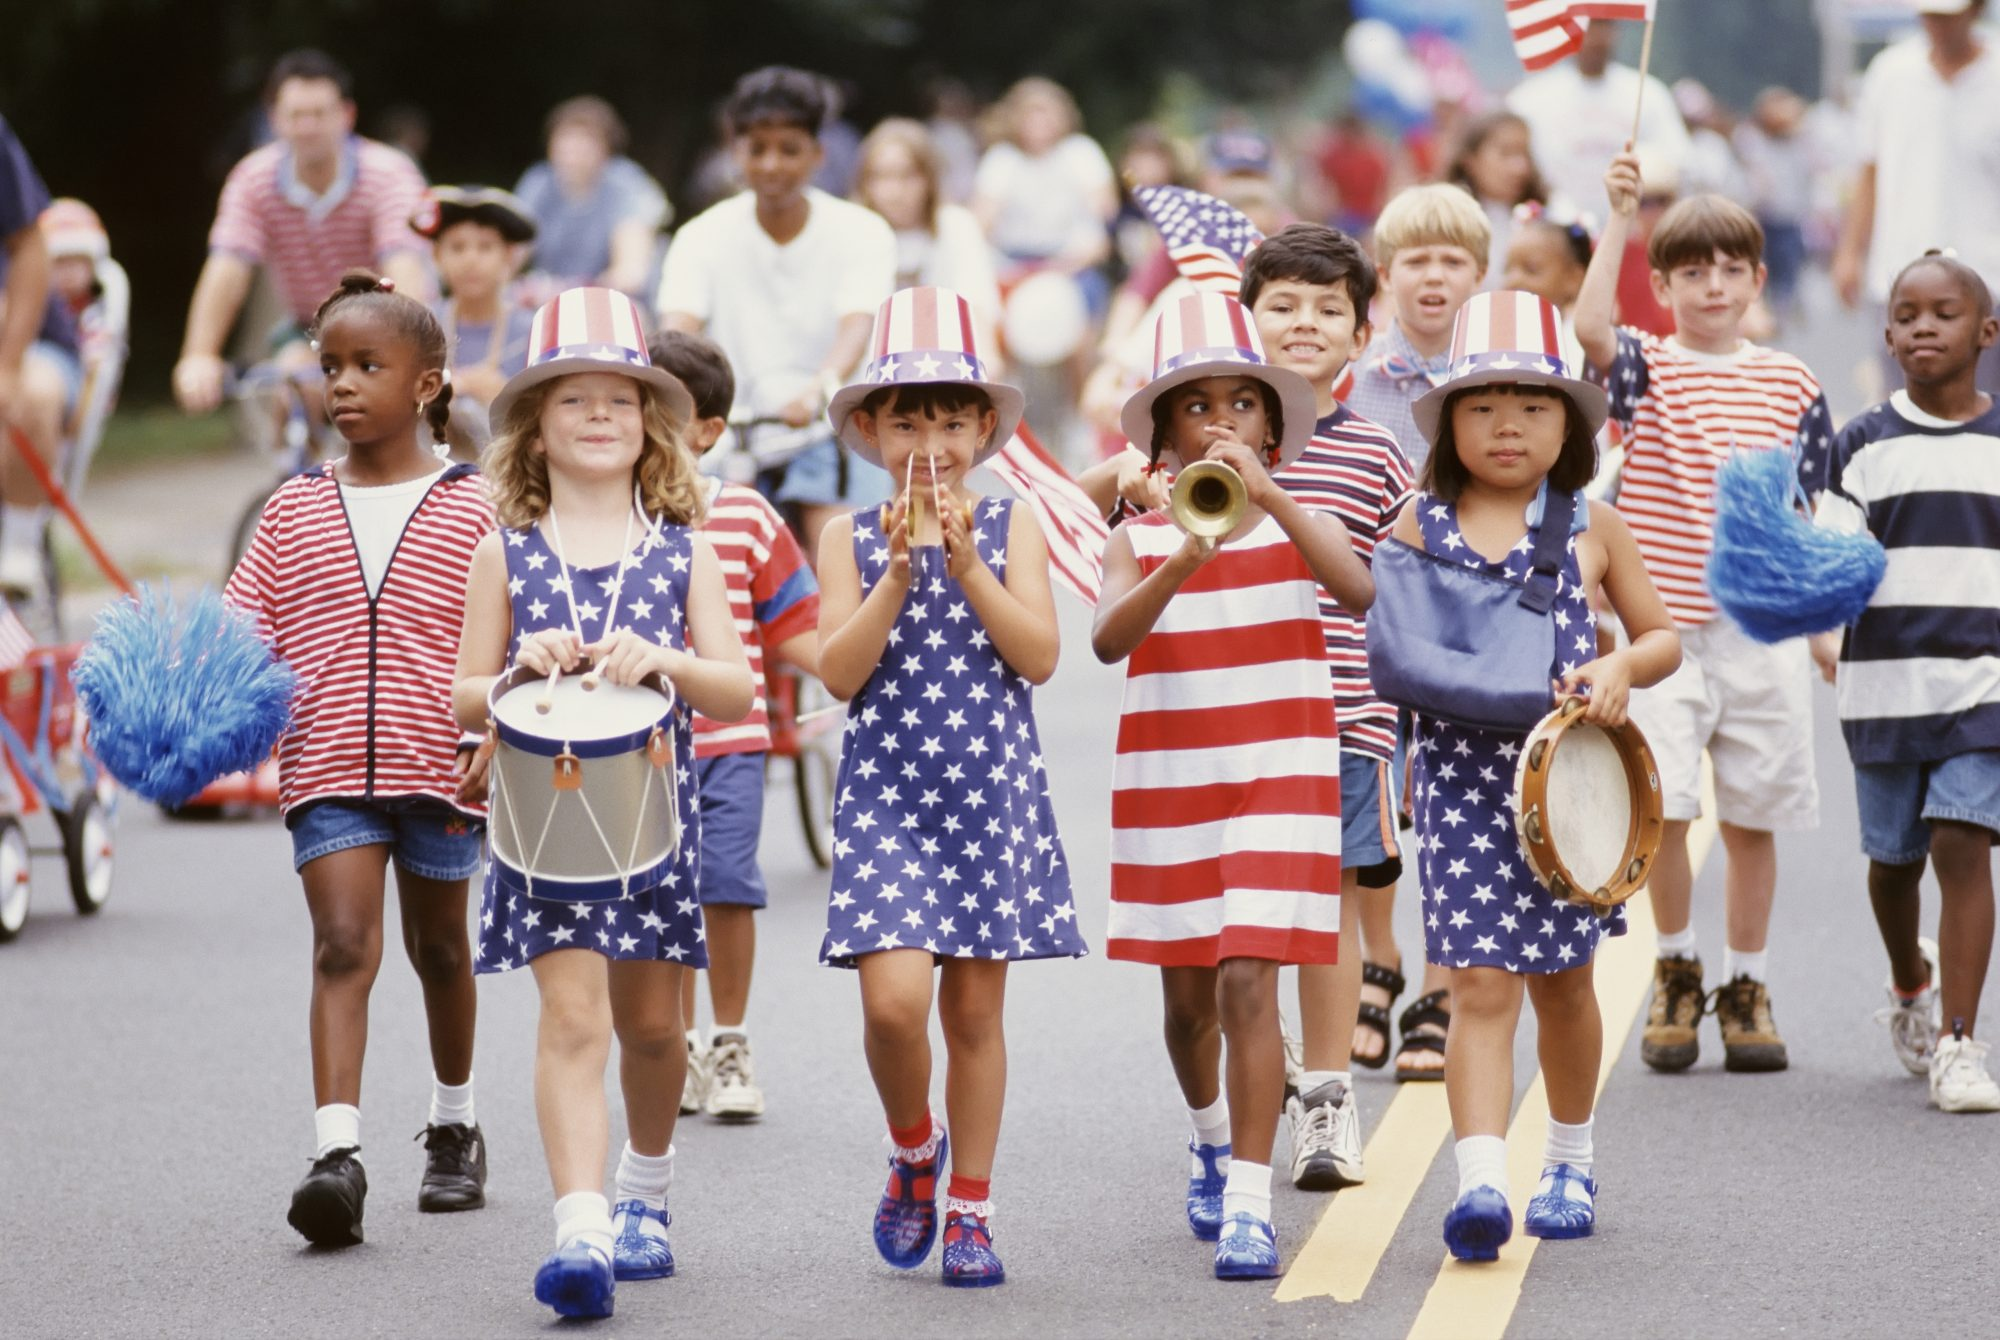 Kids in Patriotic Outfits